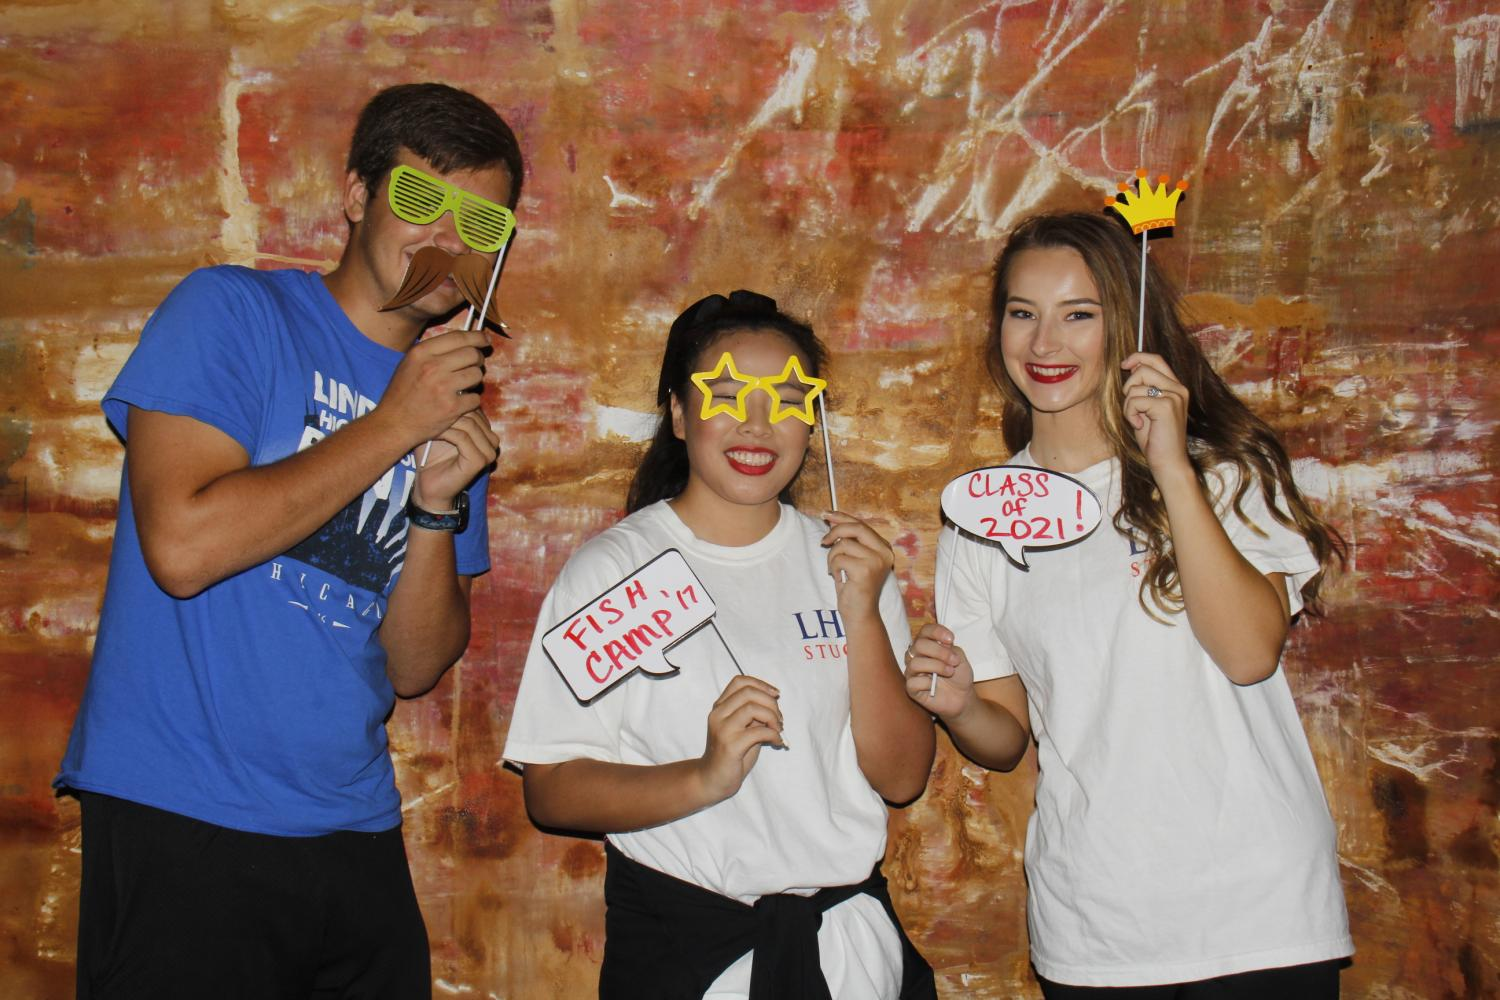 Fish+Camp+2017+Photo+Booth